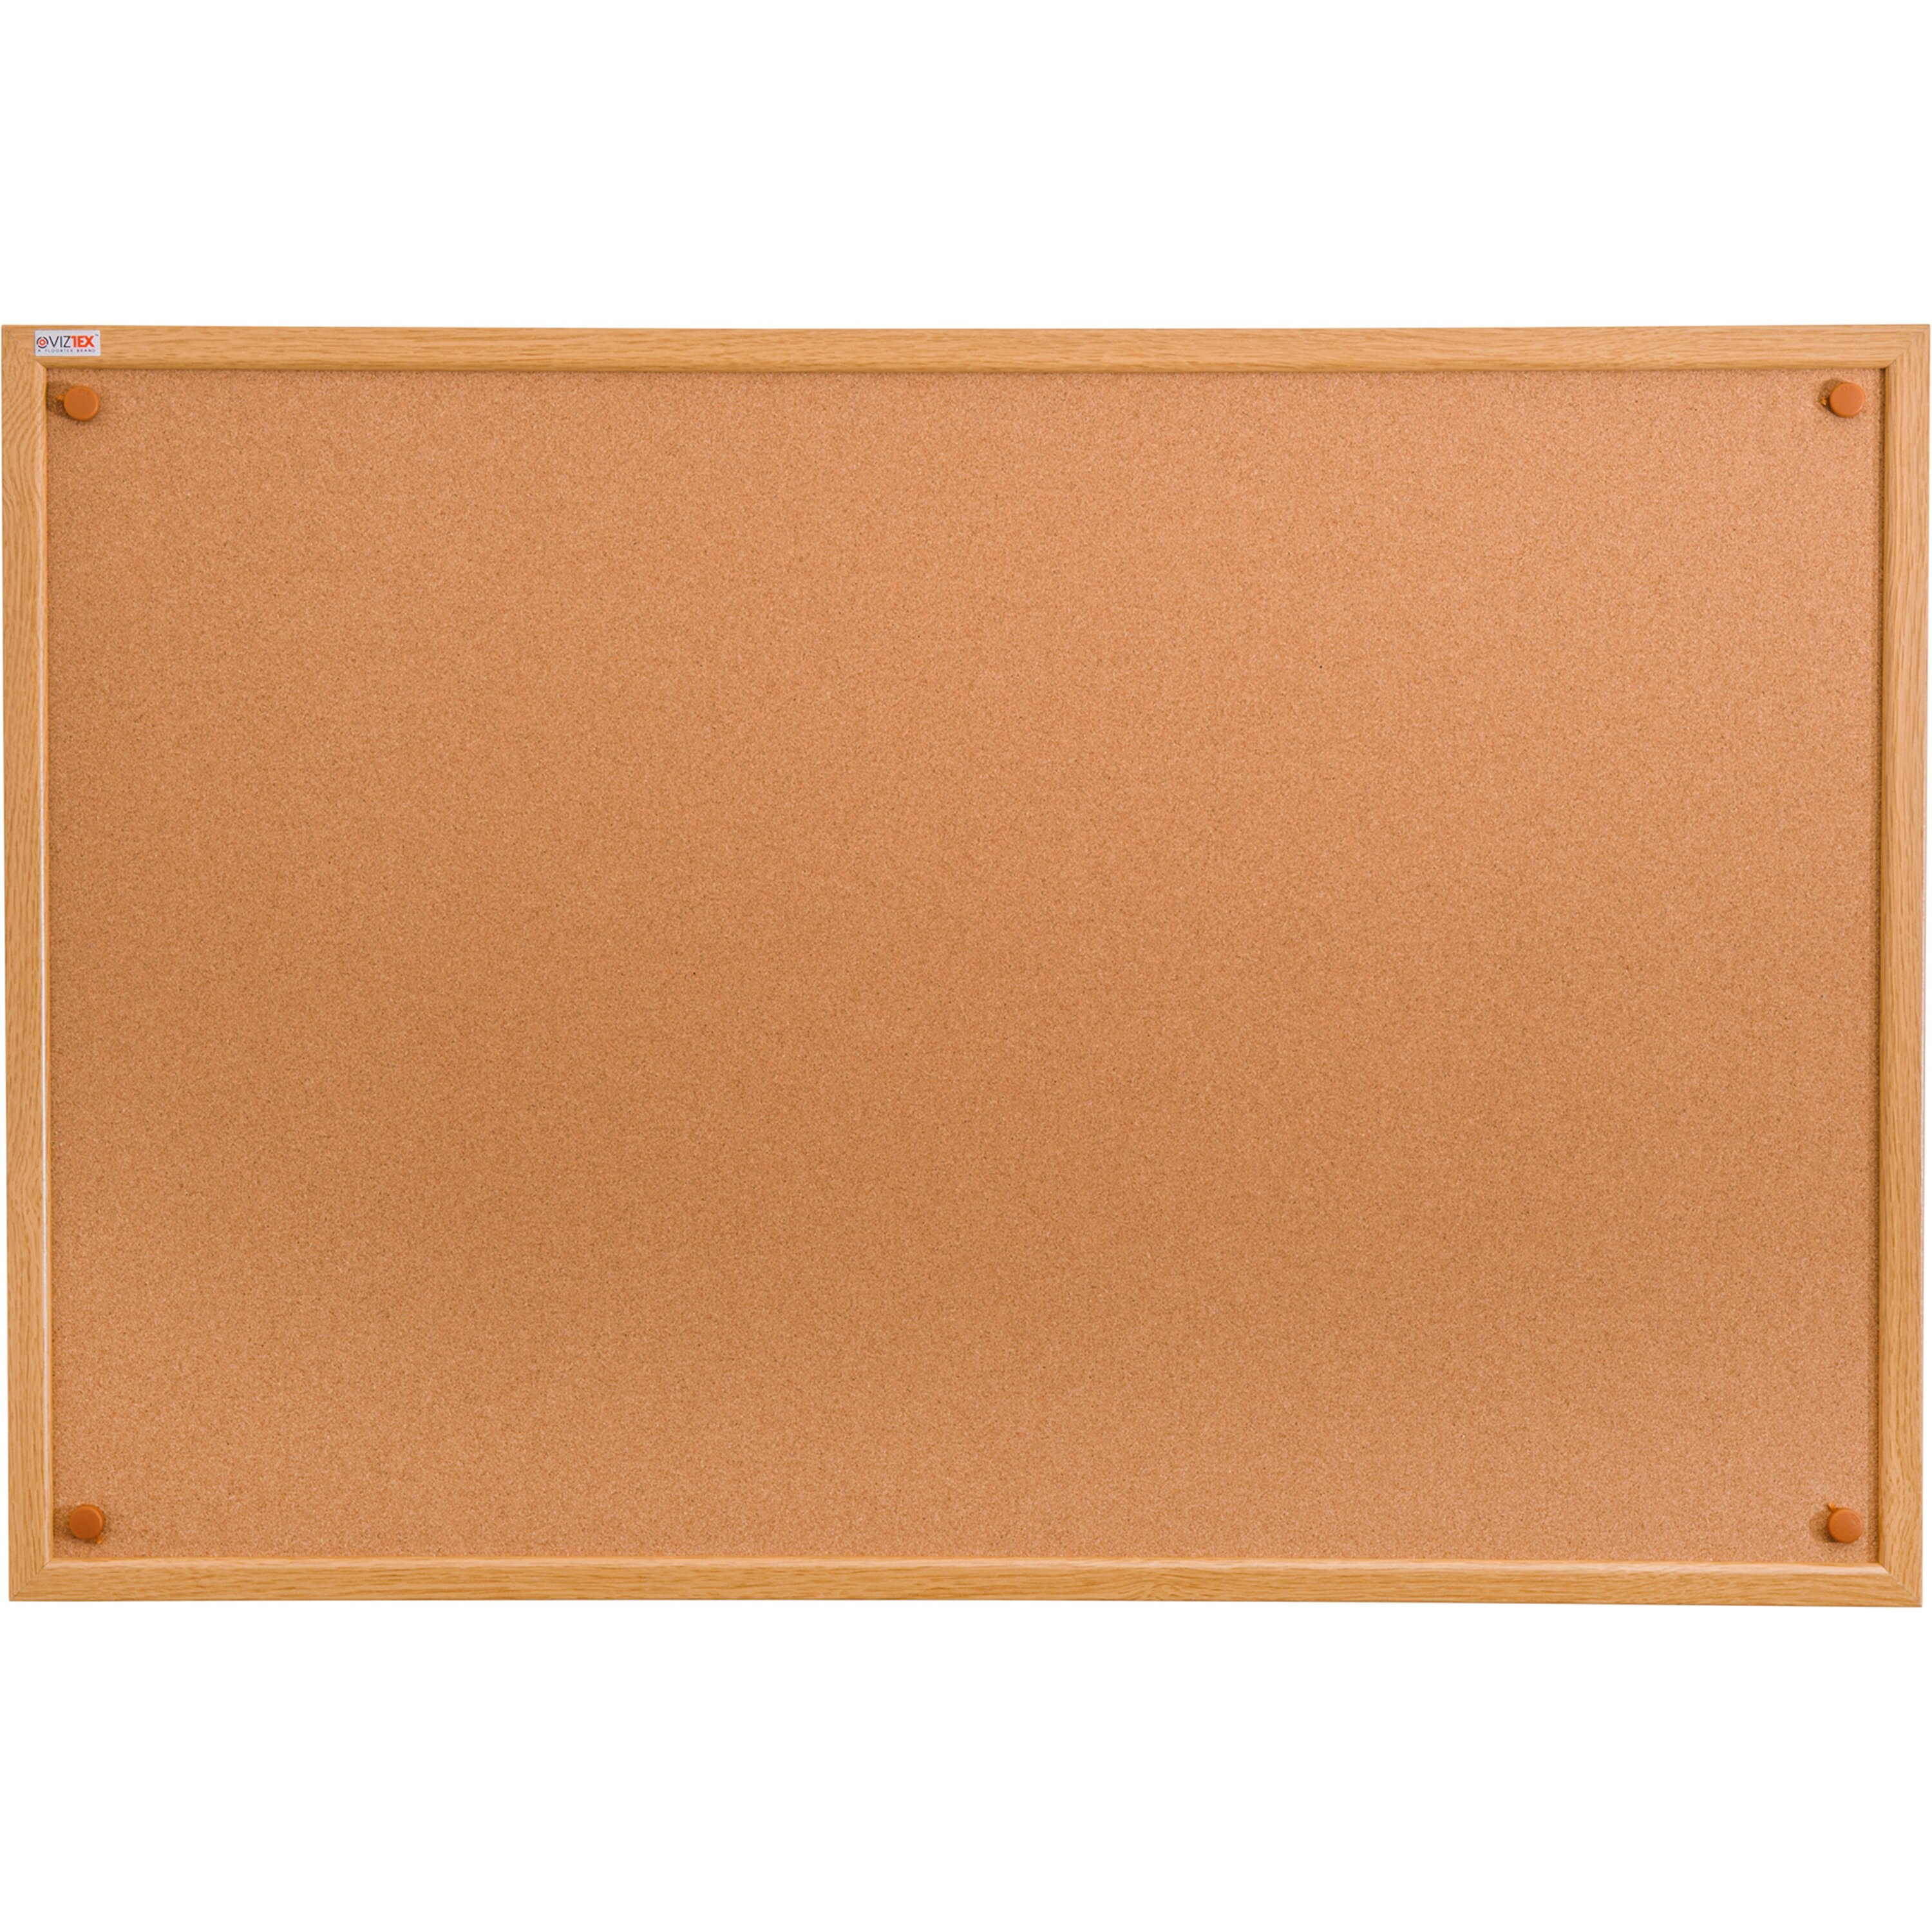 latest trends cork board wall crowdbuild for